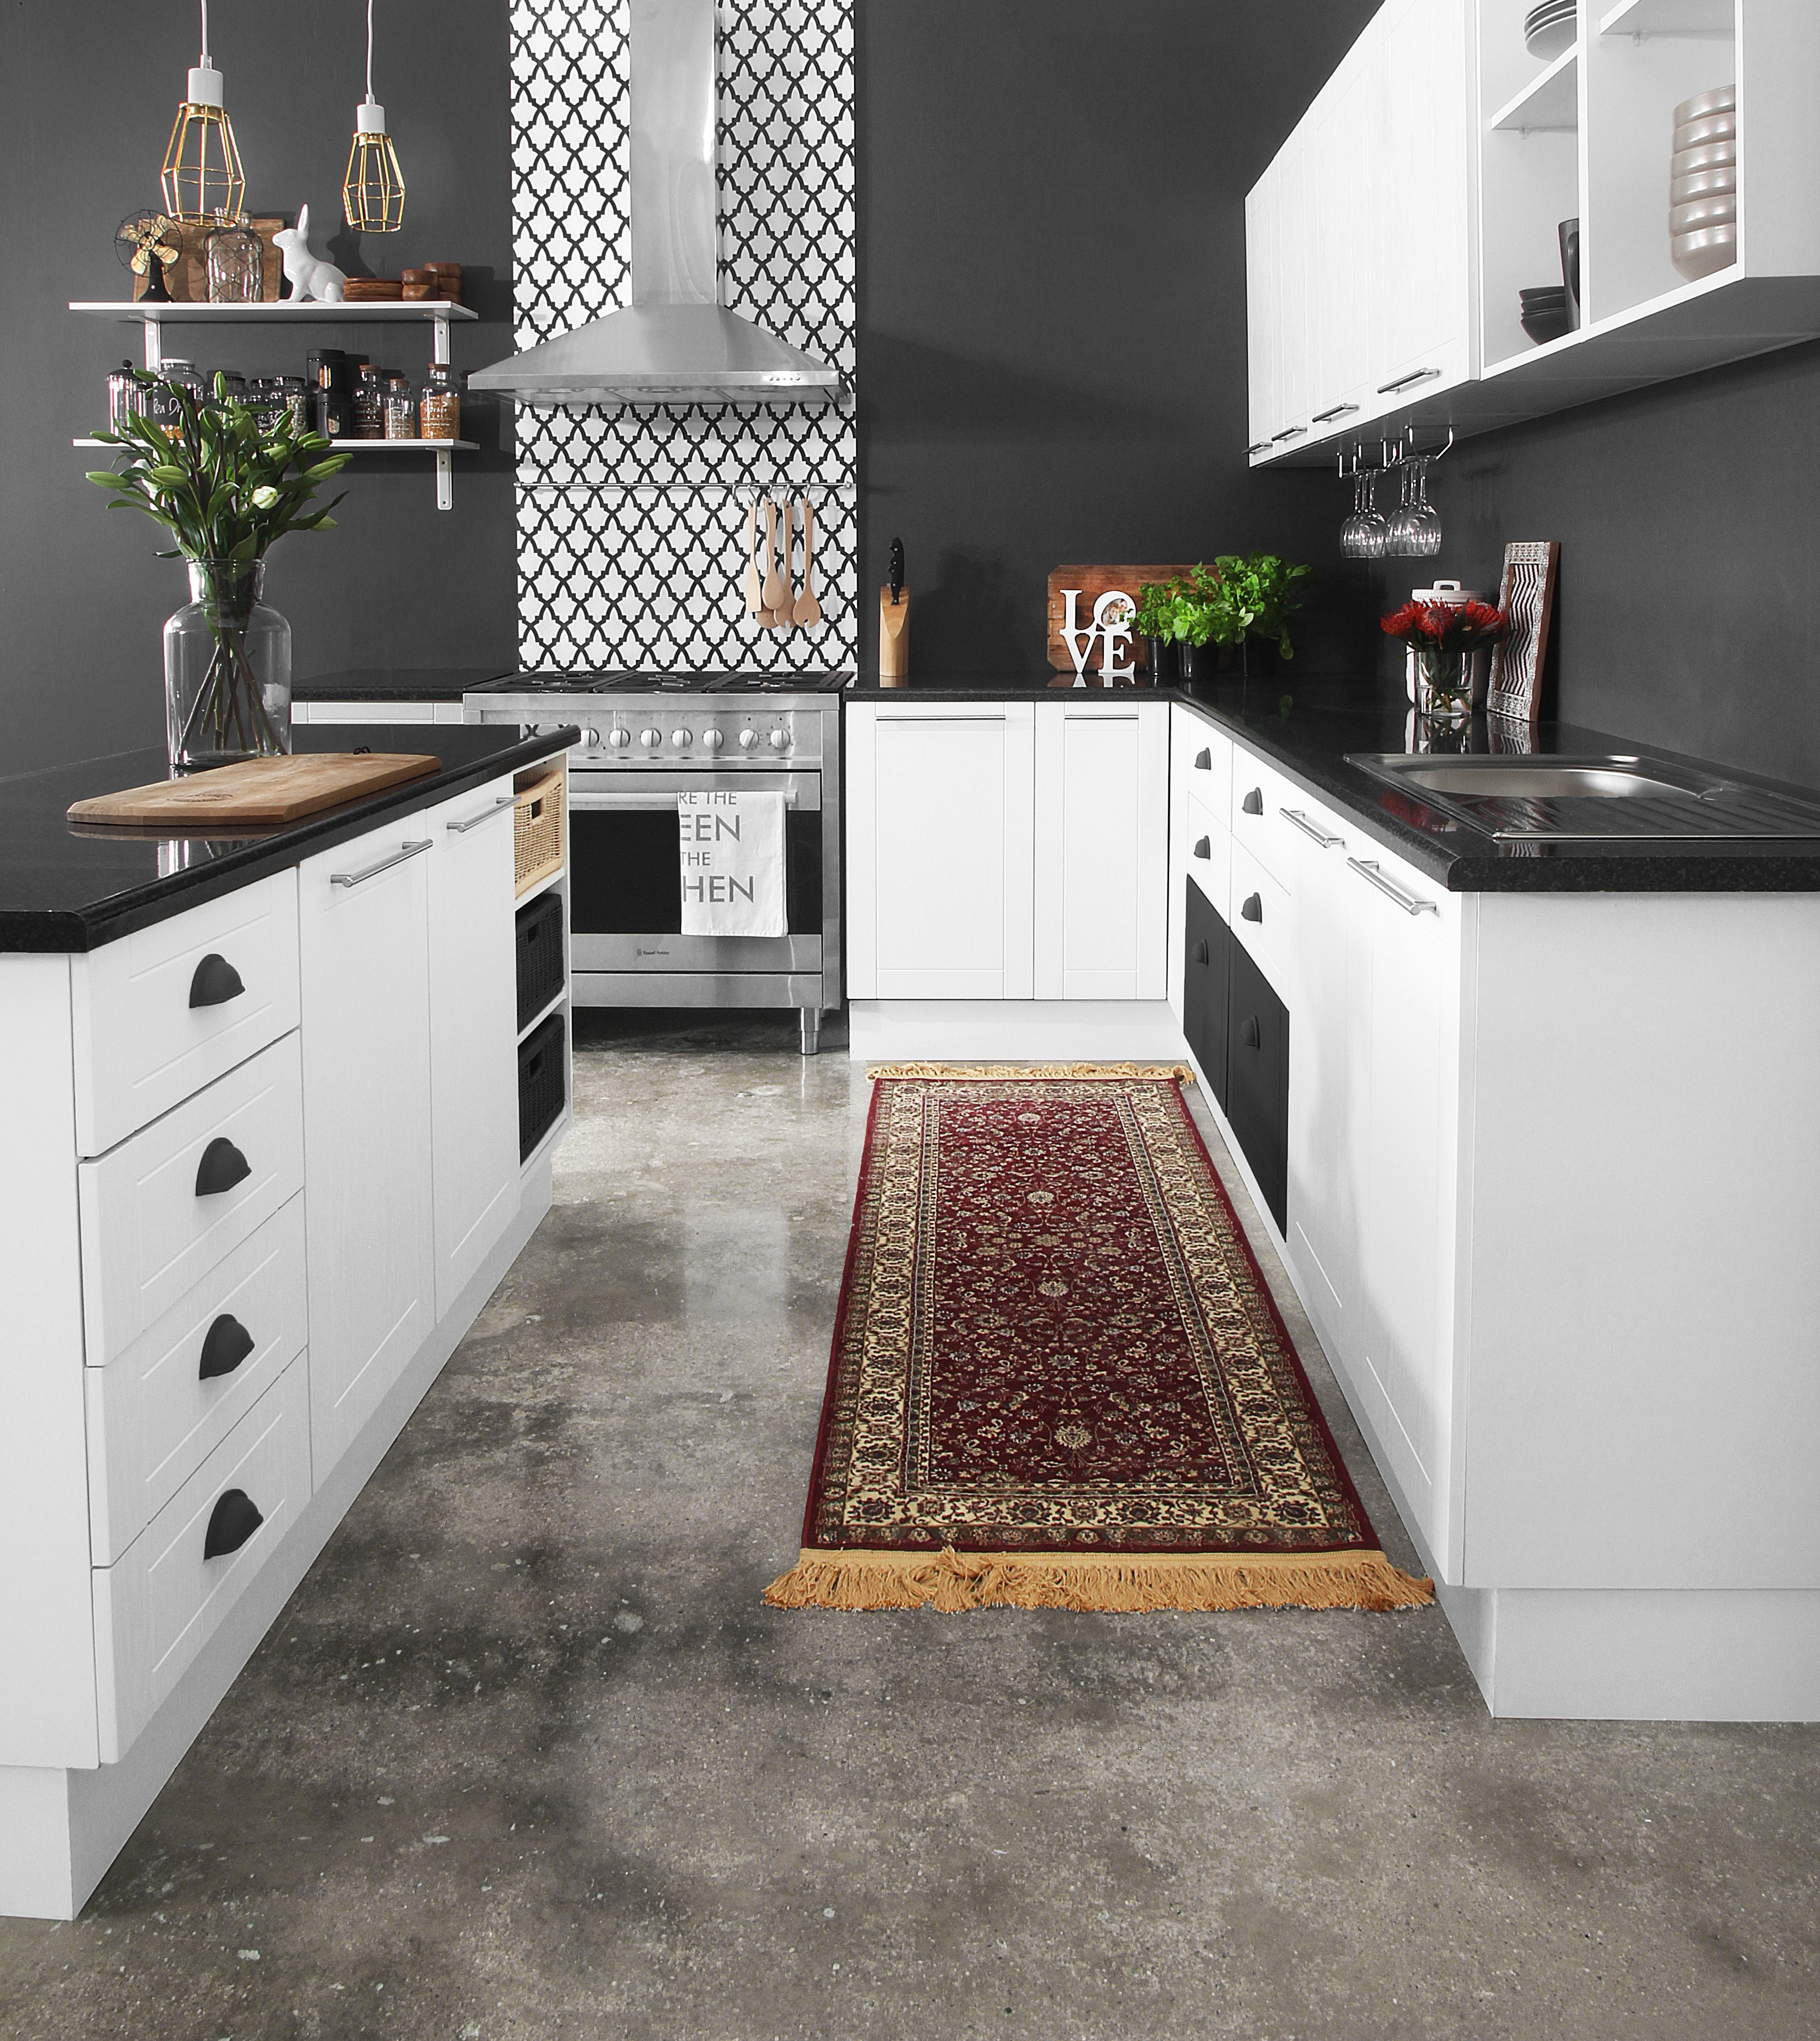 Ucan do it make a bold statement with your kitchen and choose a monochrome colour palette solutioingenieria Gallery